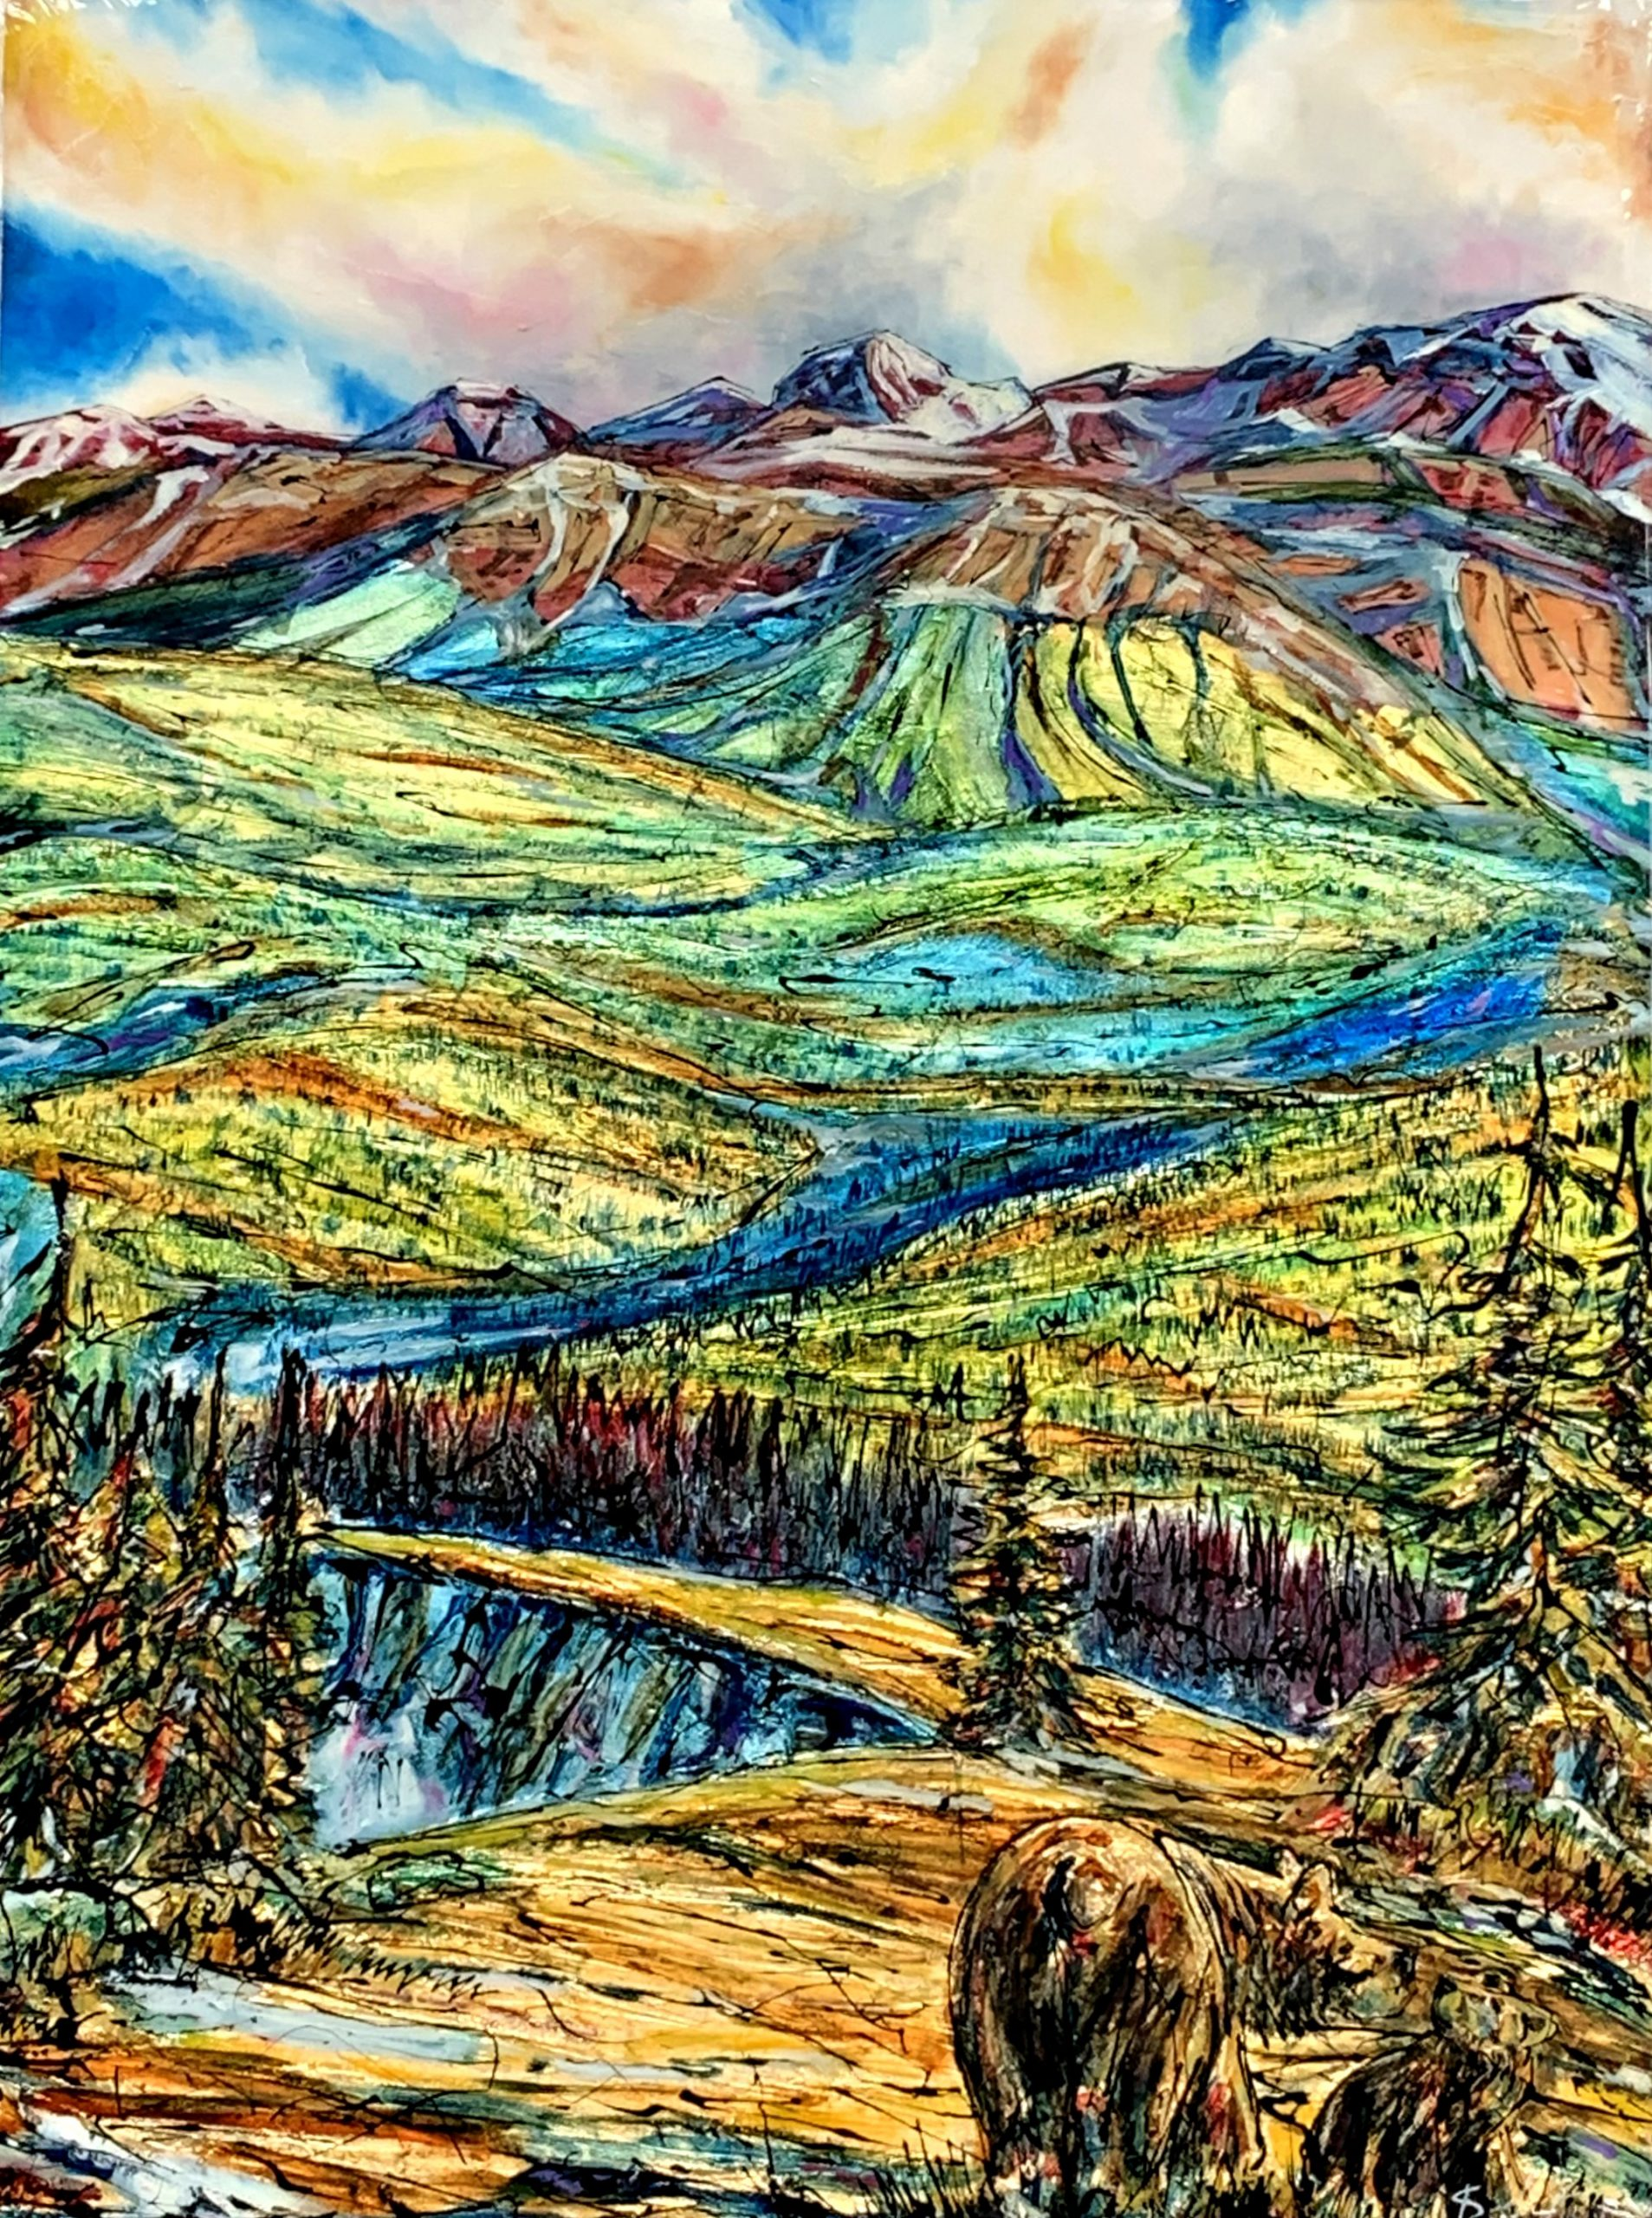 Sights on Prairie, mixed media landscape + bear painting by David Zimmerman | Effusion Art Gallery + Glass Studio, Invermere BC